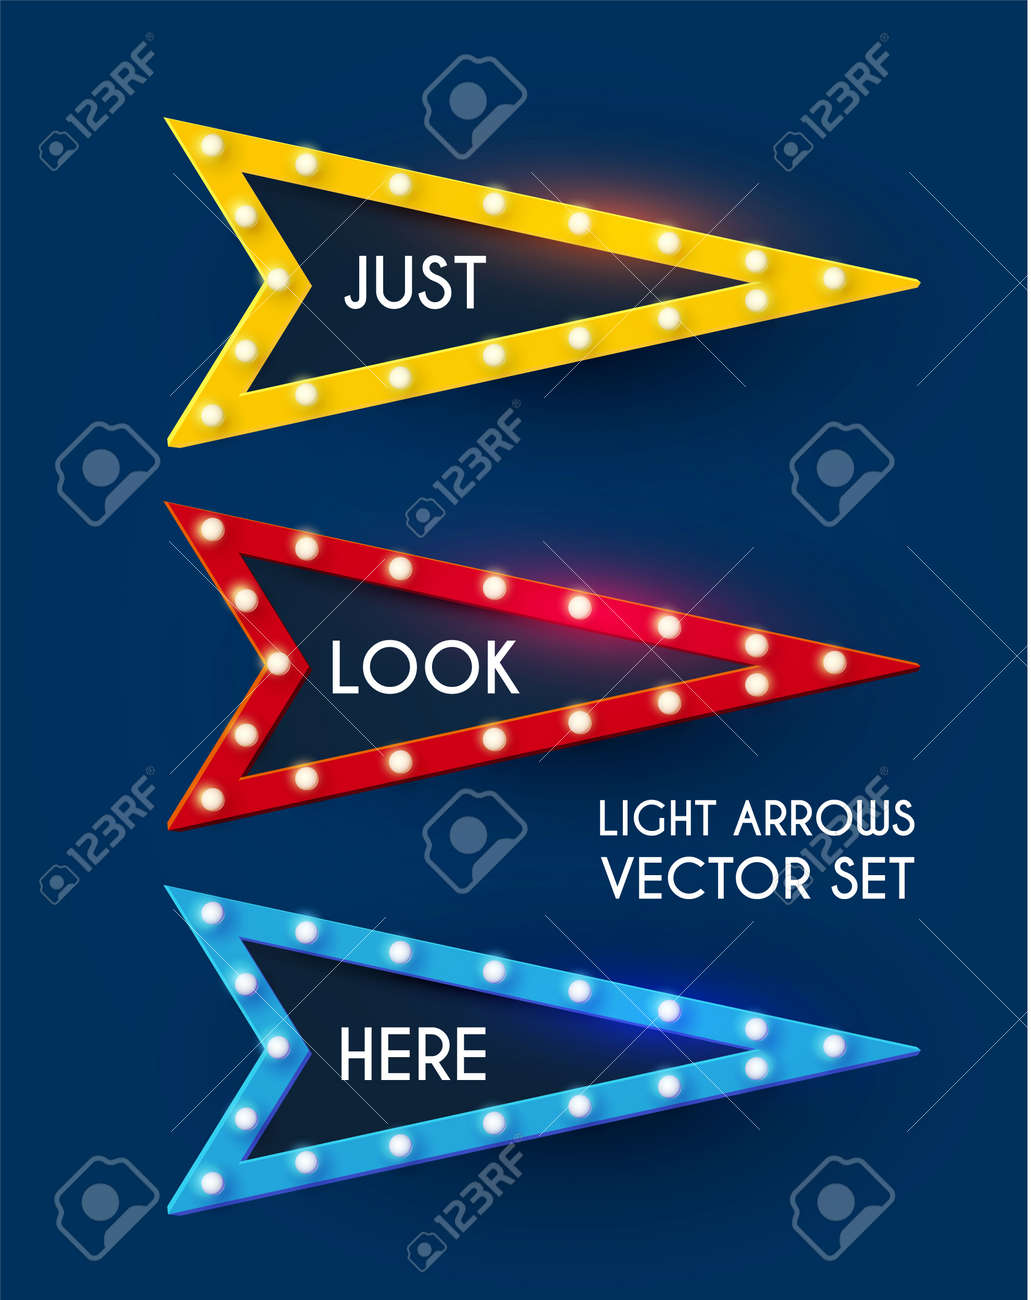 Shining retro light sing set. Vintage banner with light bulbs. Cinema, theatre, ad, show and casino design. - 154367837